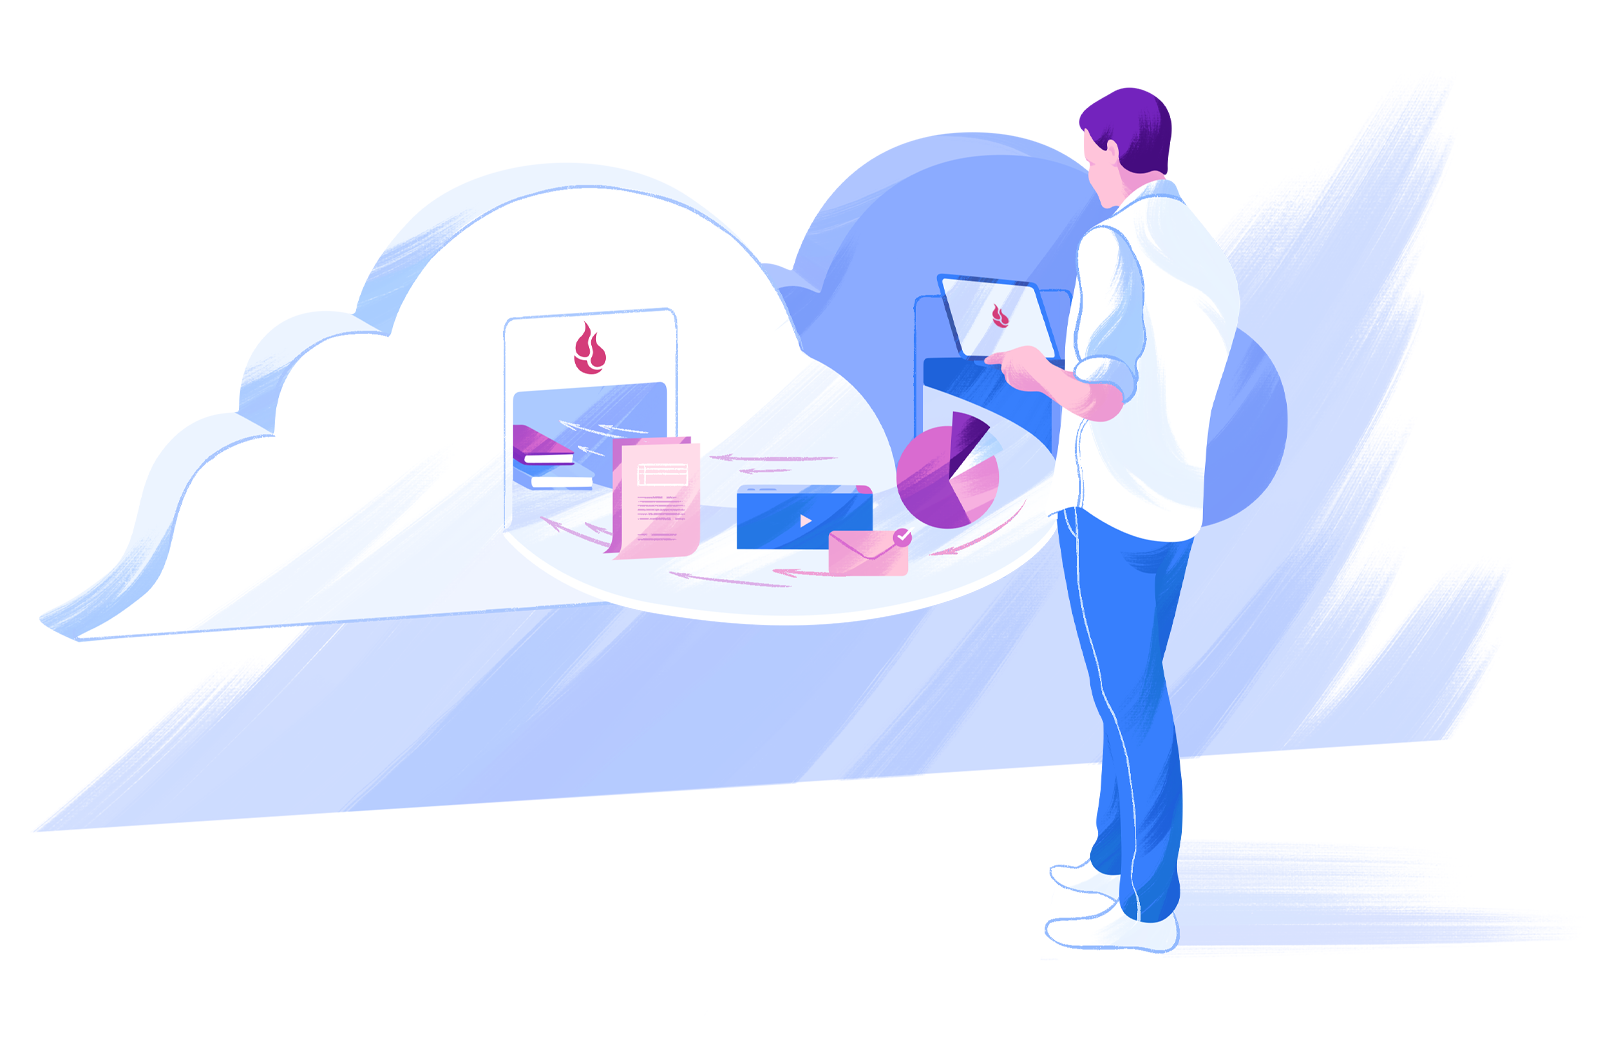 B2 Cloud to Cloud Hero Illustration